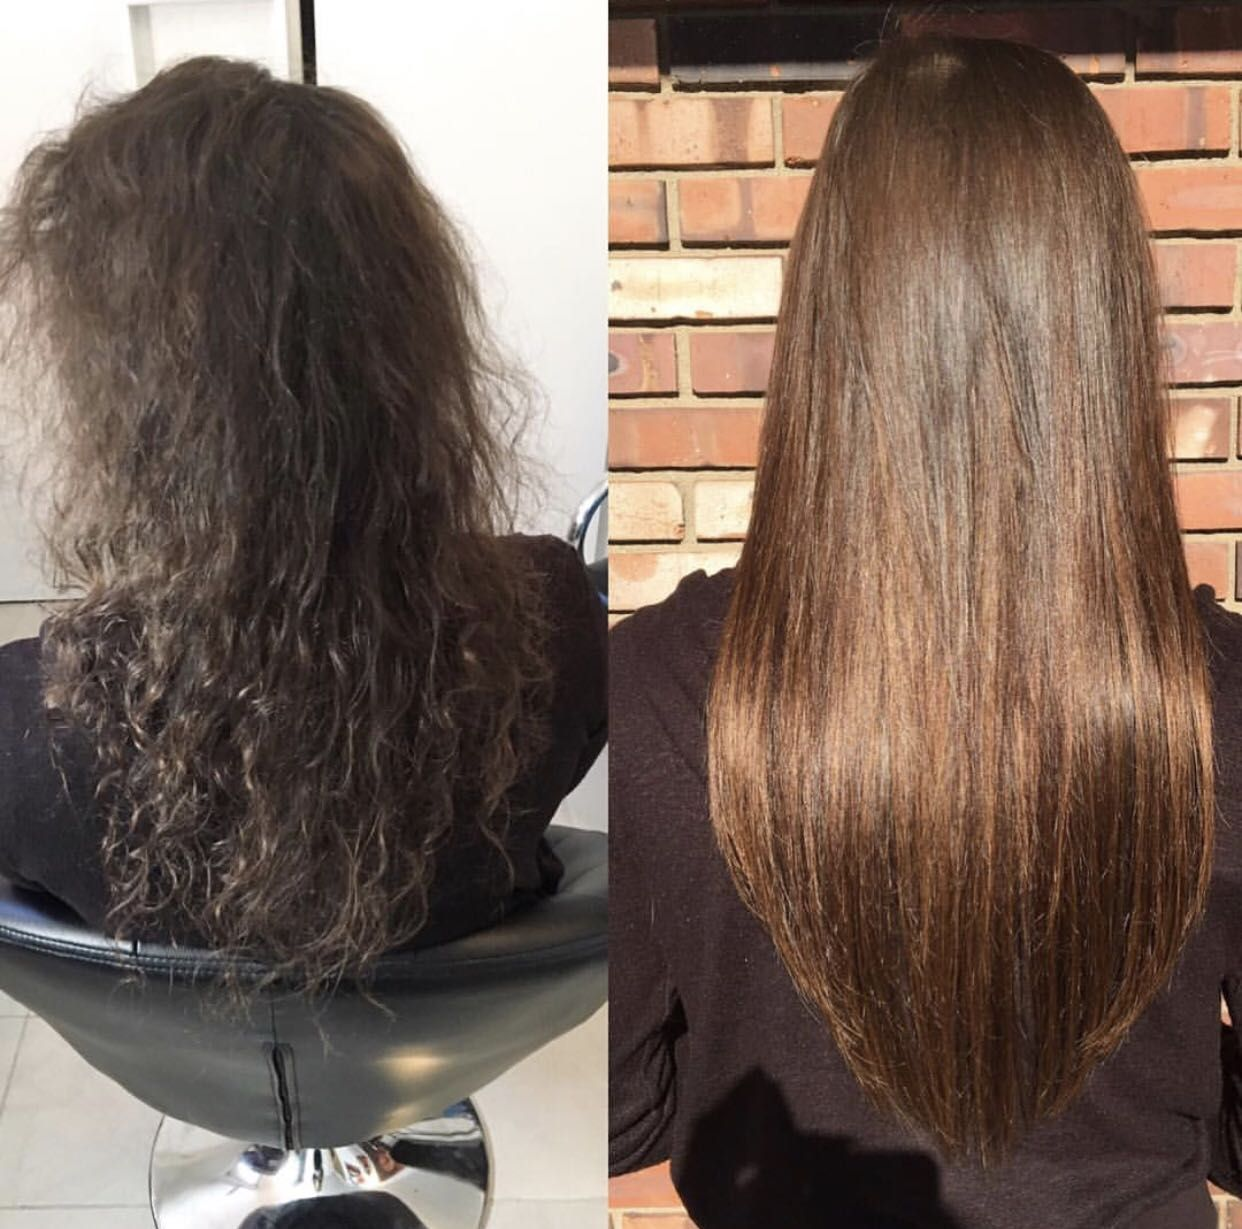 Transformation Using Glam Seamless Extensions Hair By Raquel